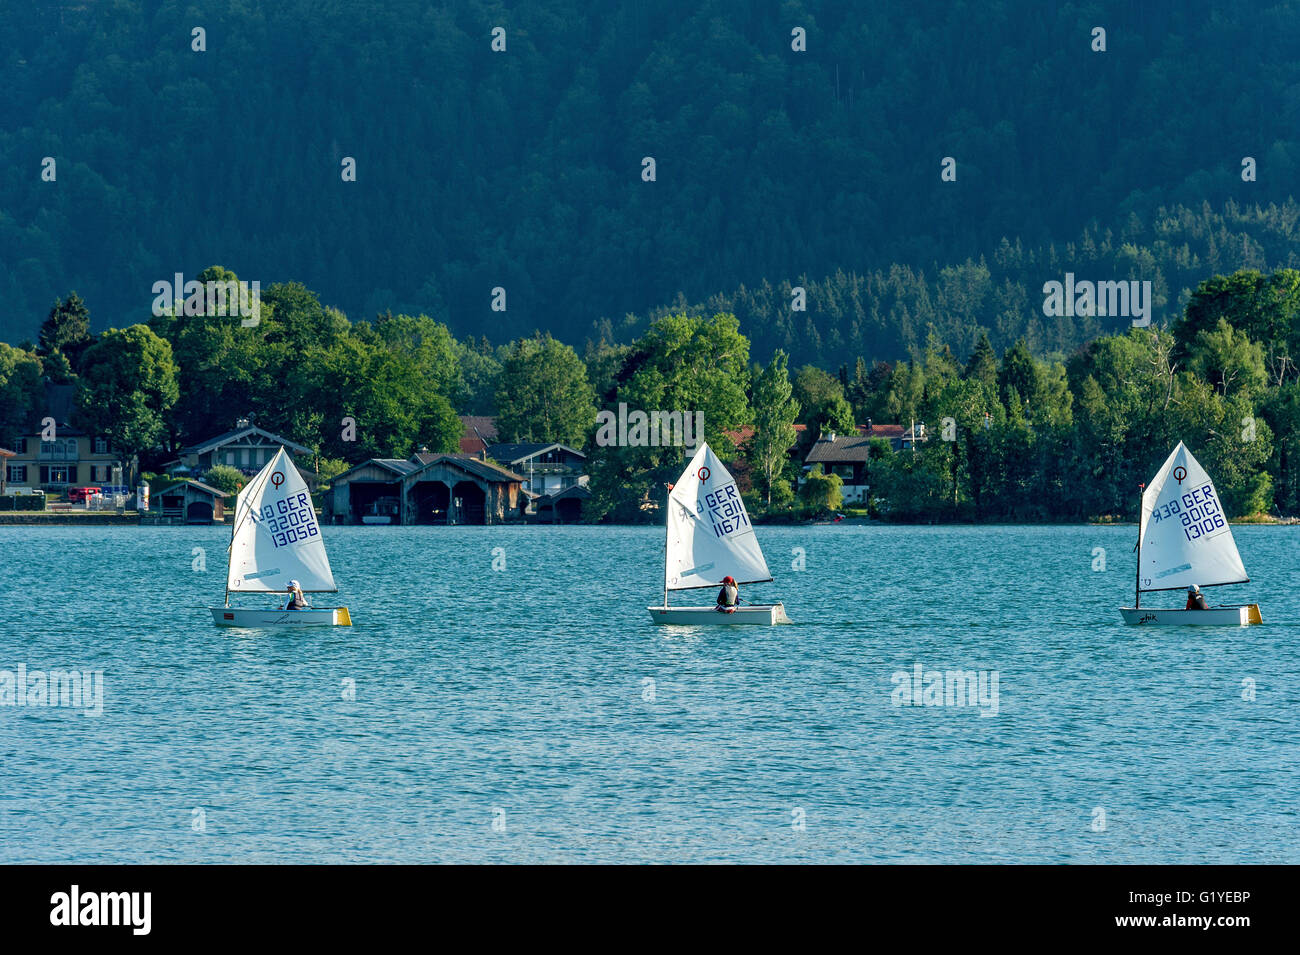 Regatta with children in sailing boats, dinghy type Optimist or Opti, Tegernsee, Upper Bavaria, Bavaria, Germany - Stock Image